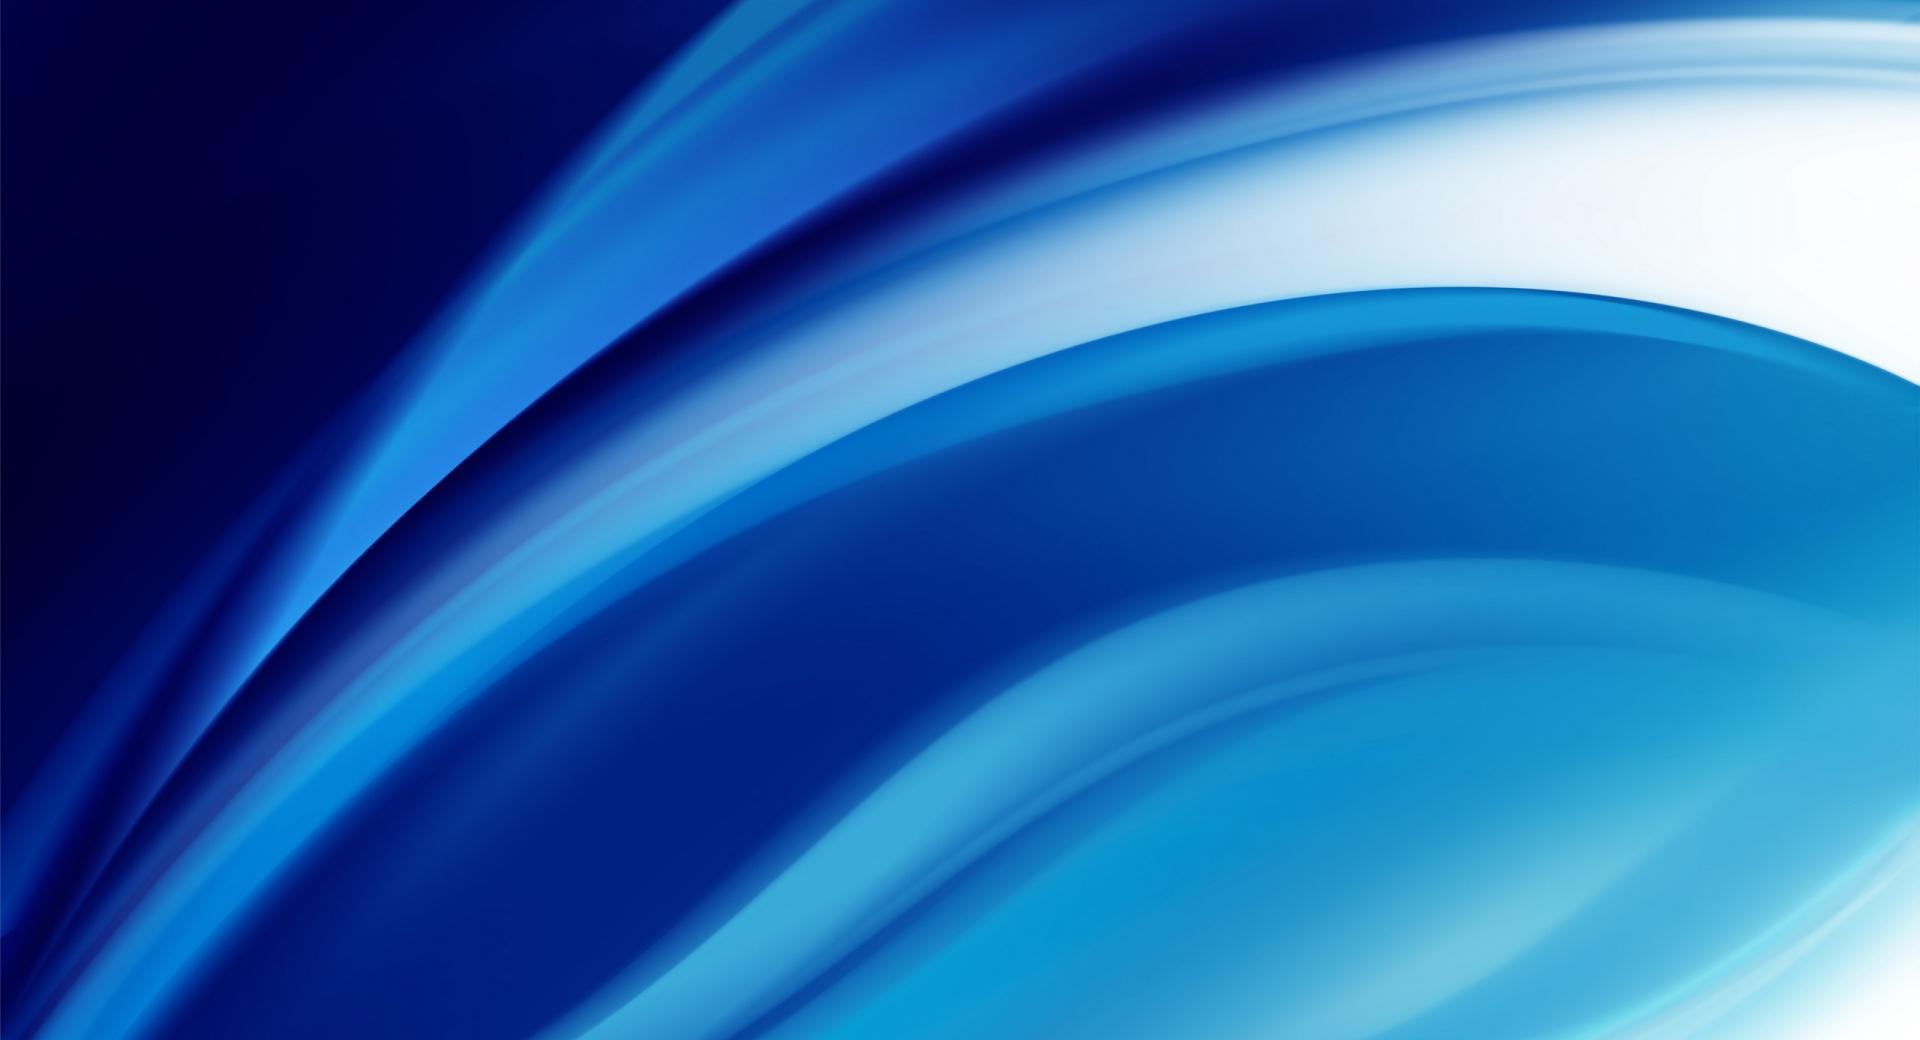 Blue Background Design wallpapers HD quality